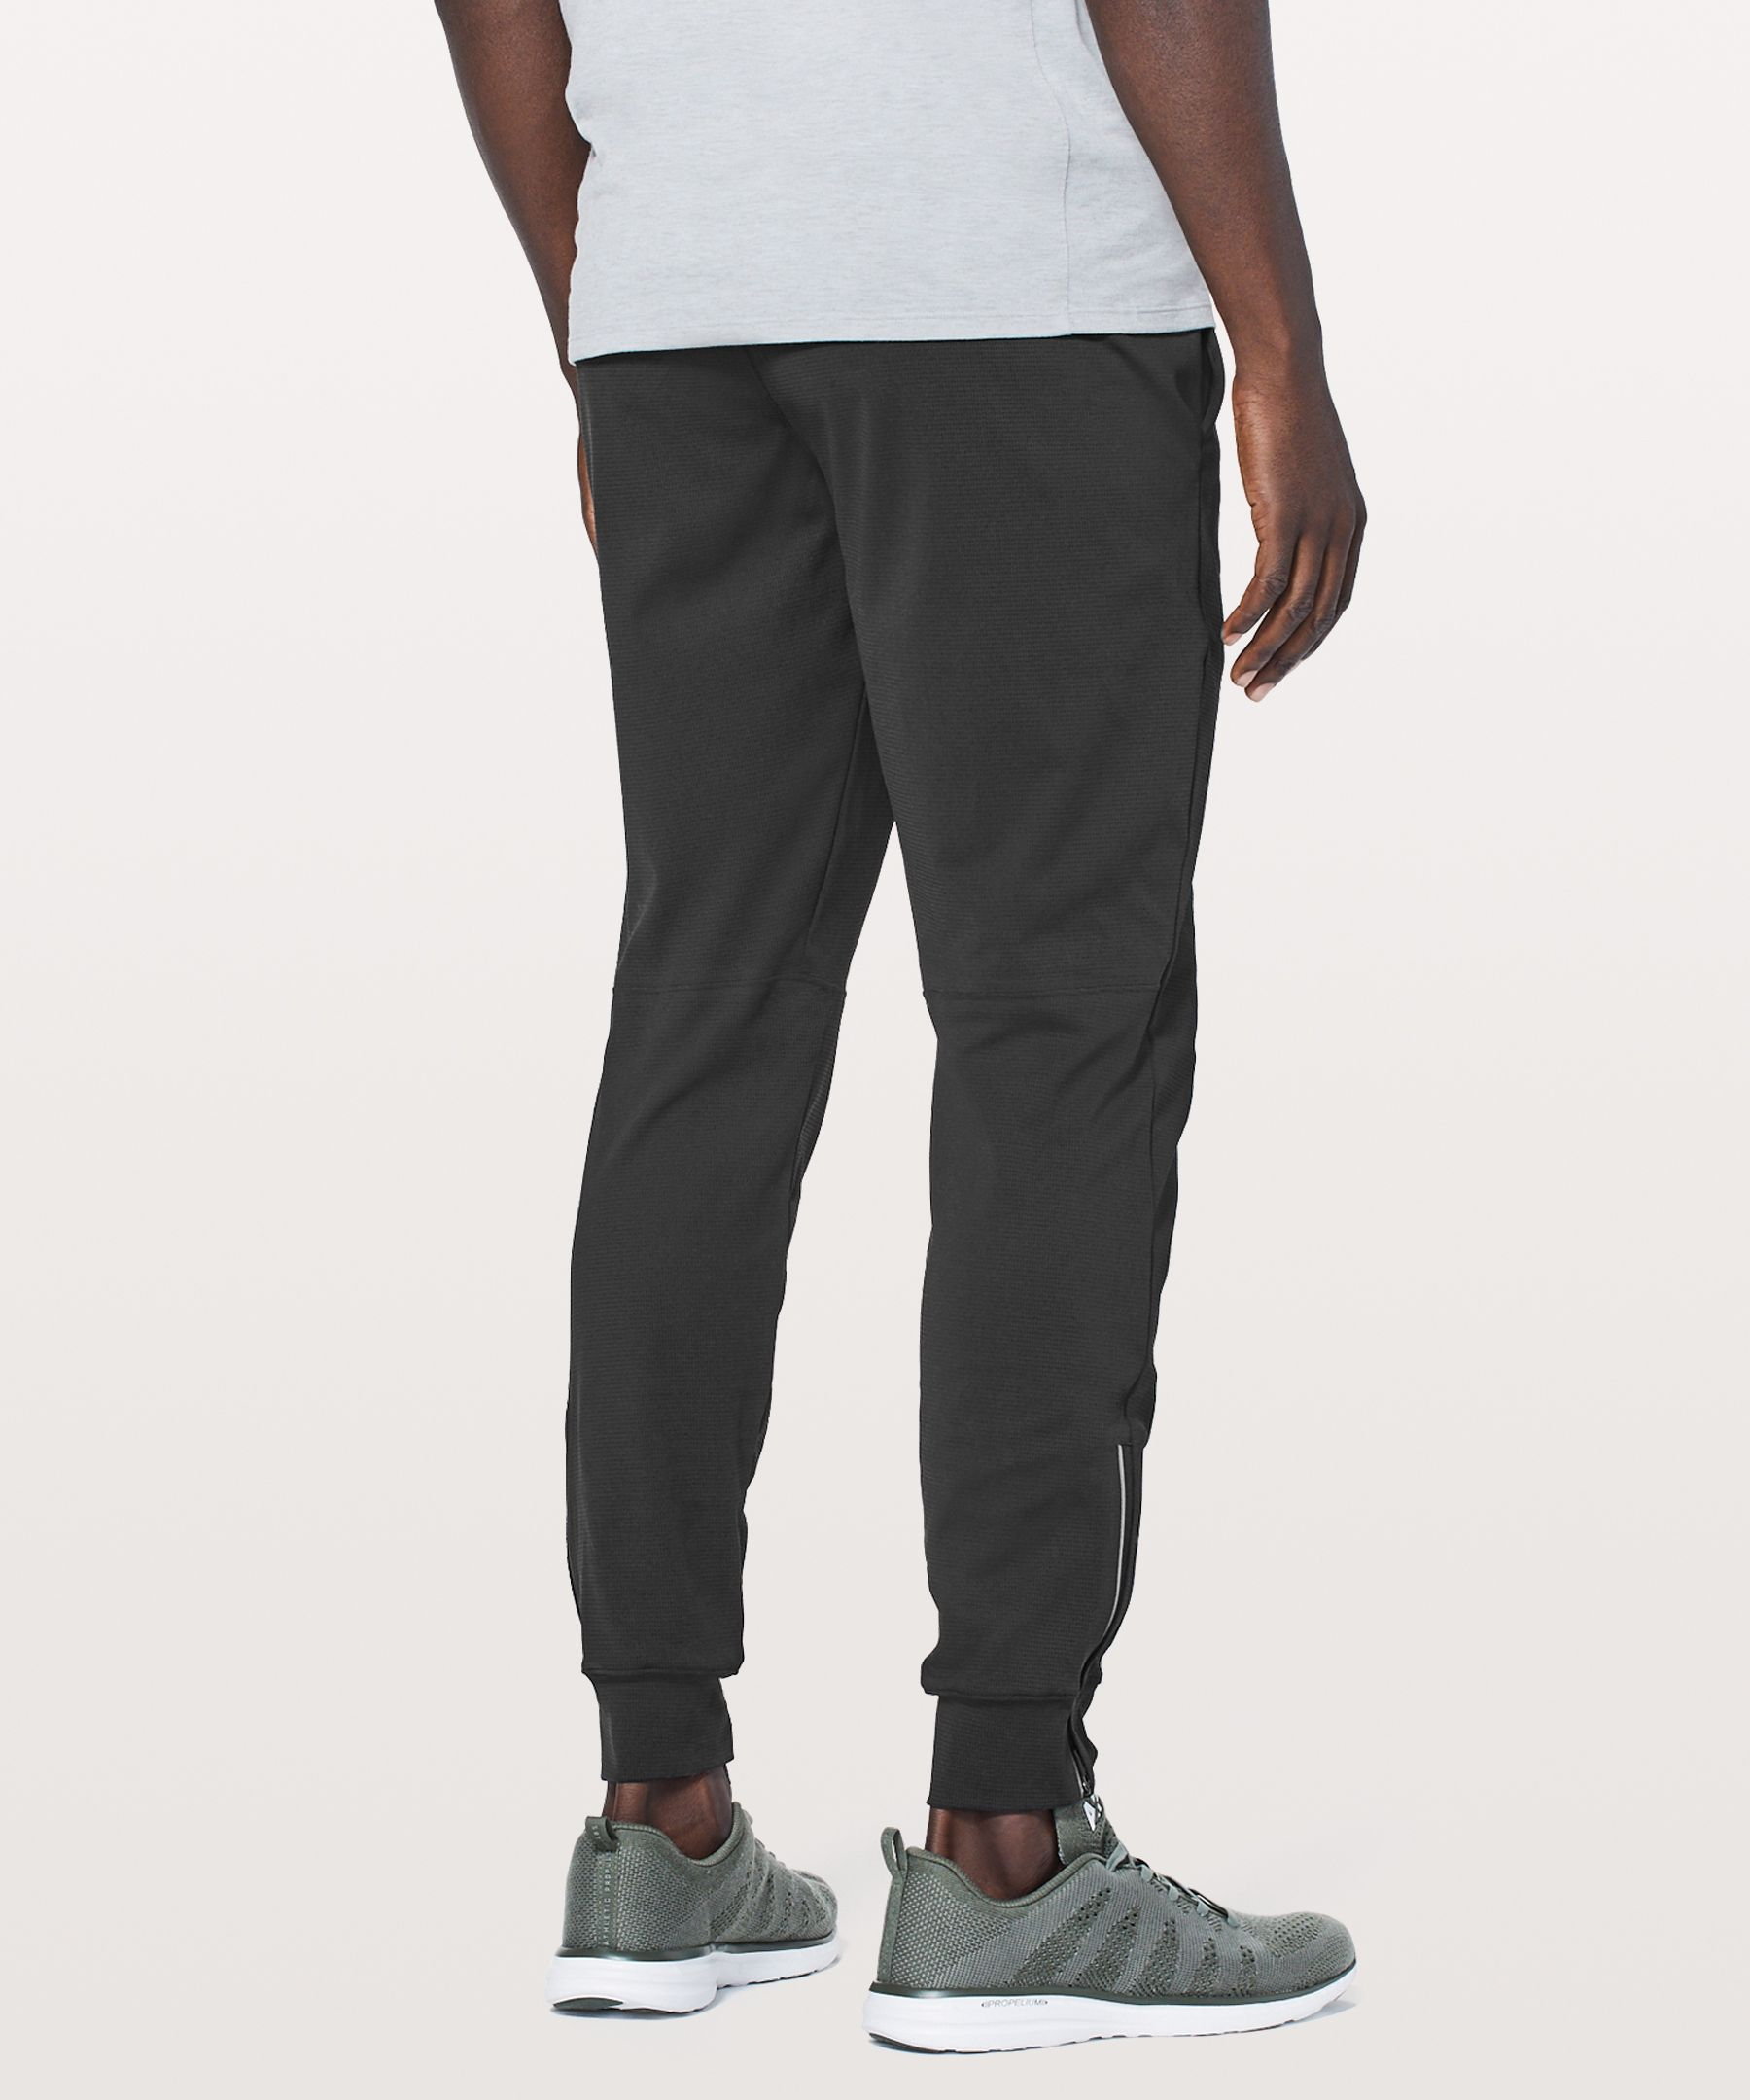 "Warped Sense Pant 30"" by Lululemon"